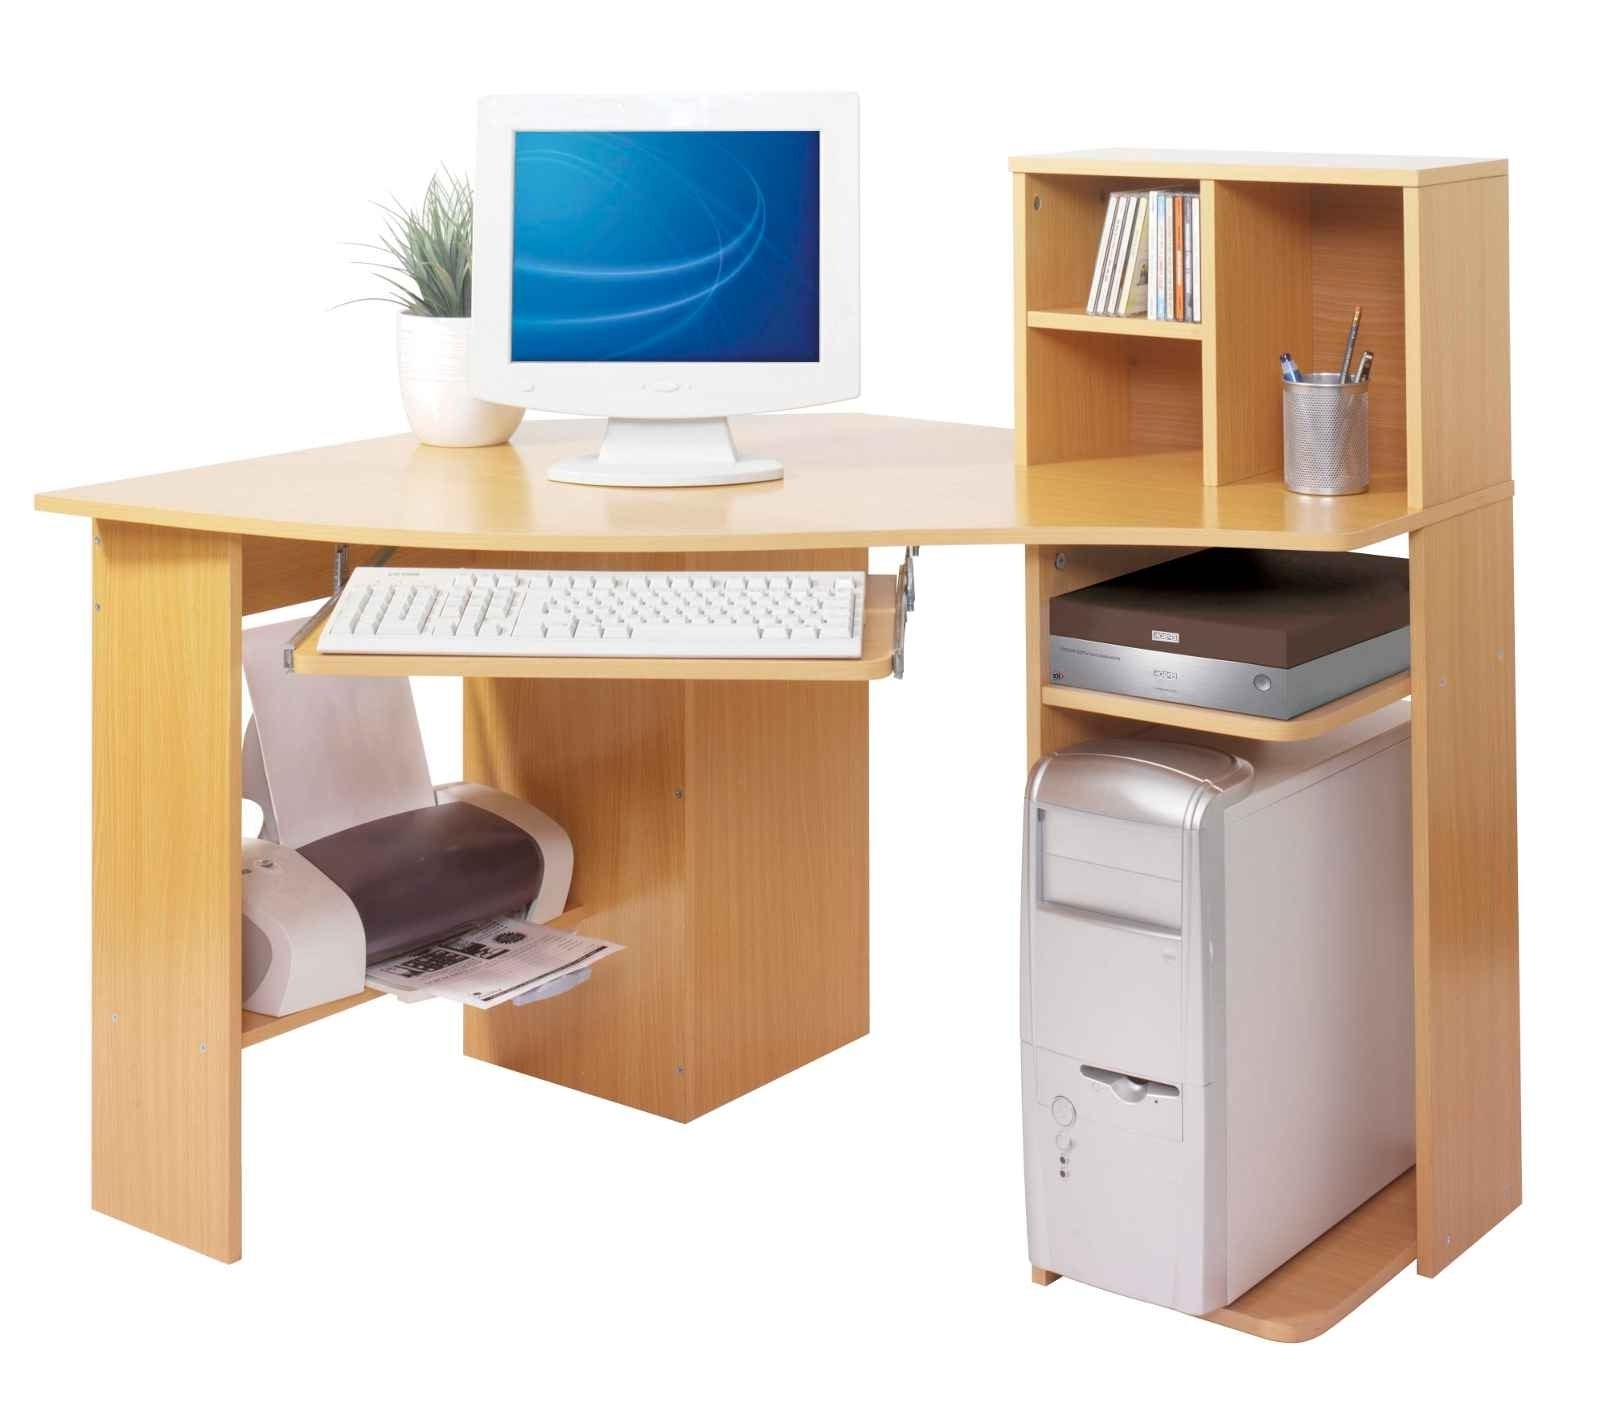 2018 Computer Desks With Printer Shelf Within Corner Computer Desk With Printer Shelf Furniture Light Brown And (View 10 of 20)